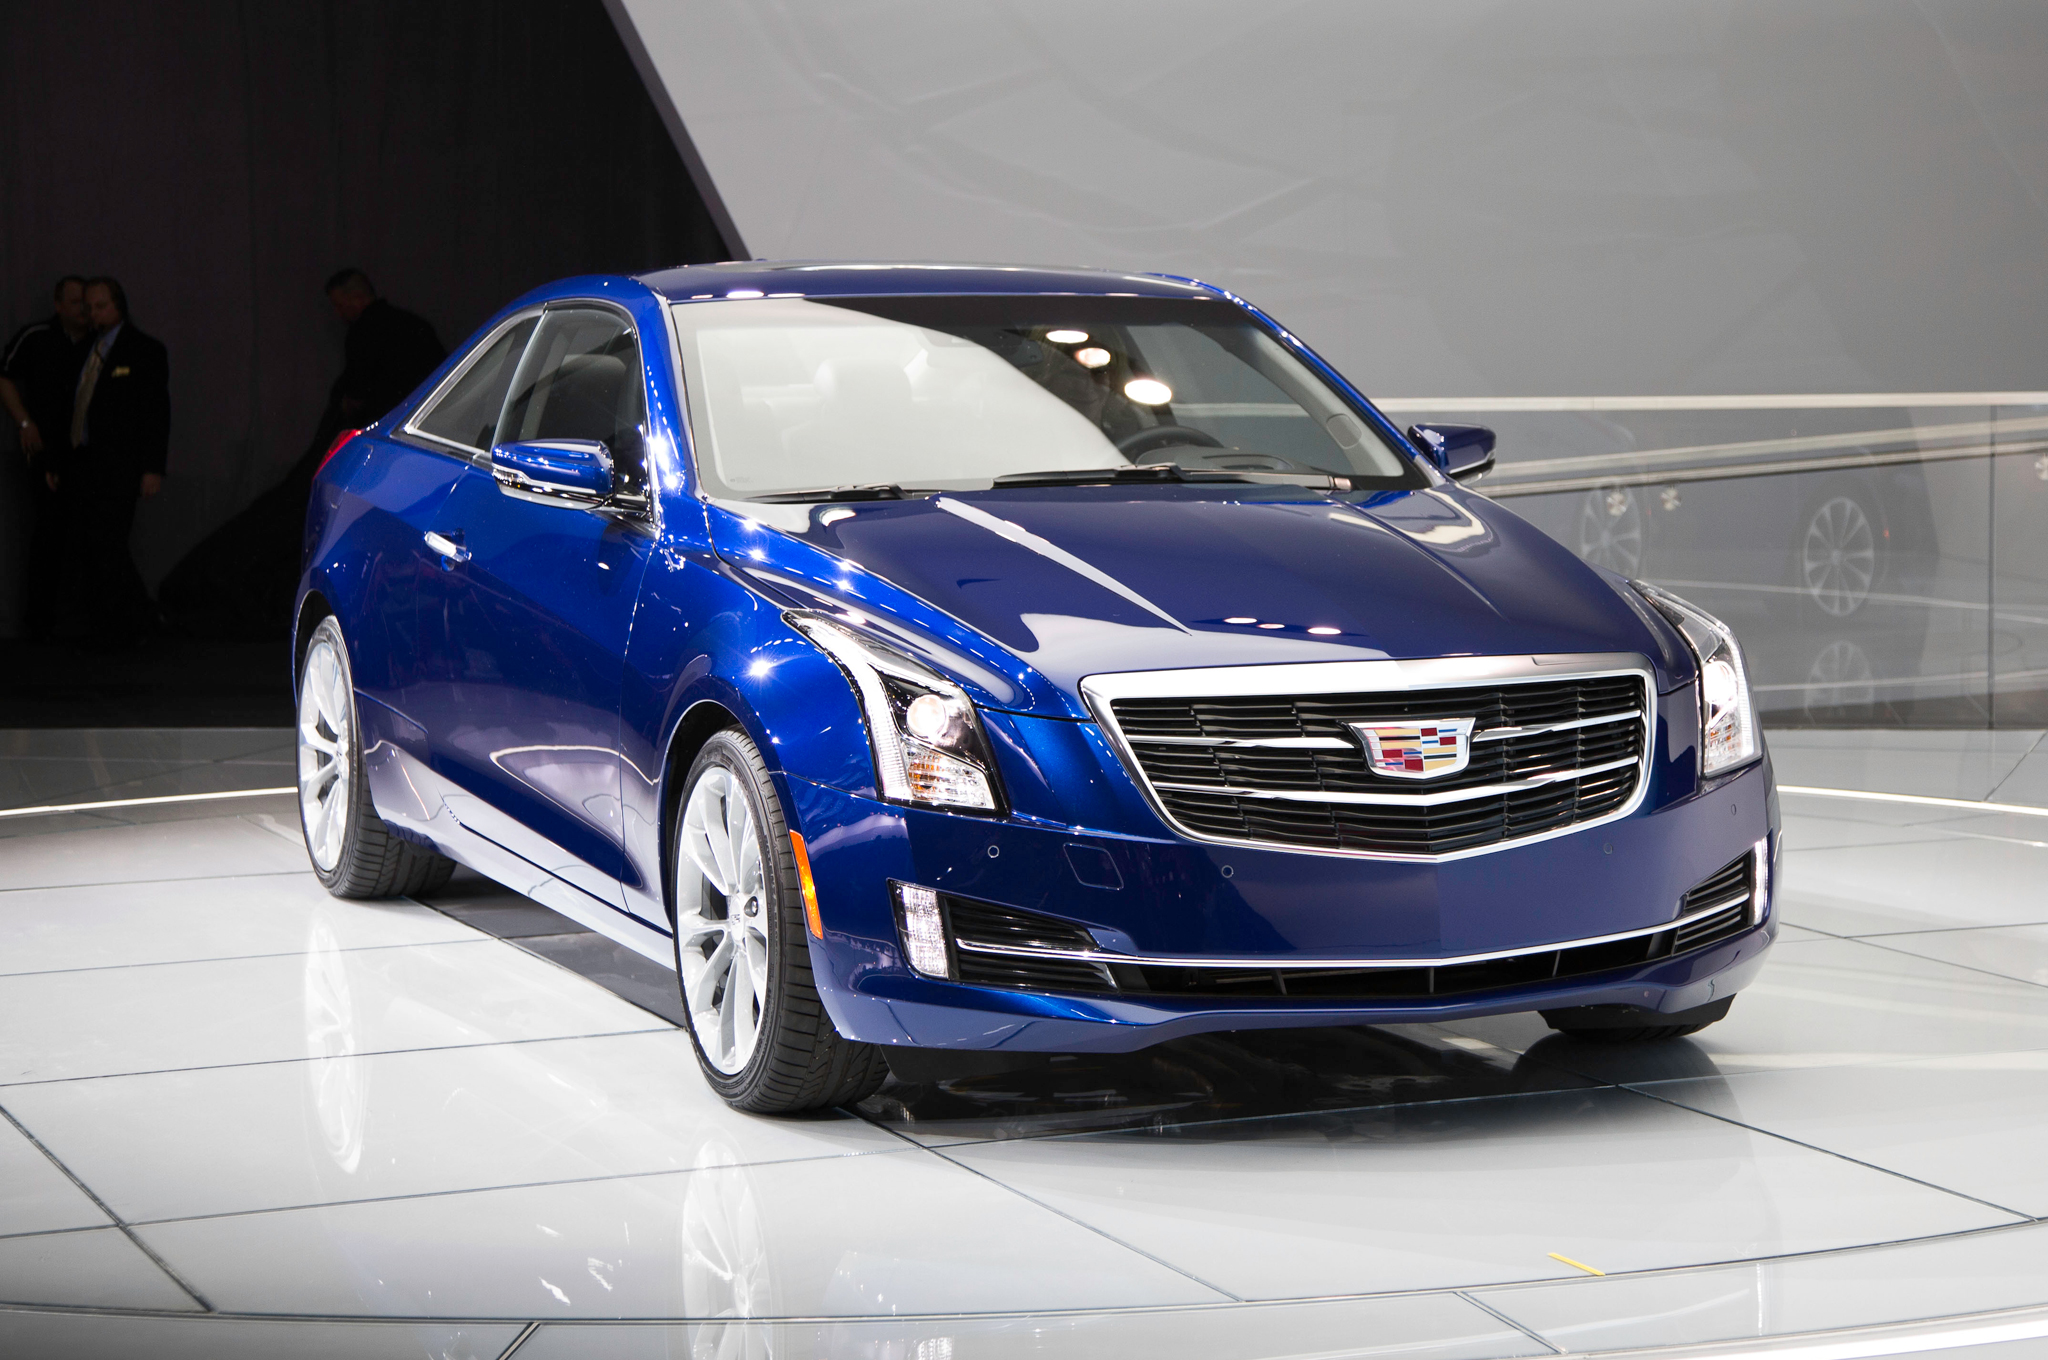 2015 Cadillac ATS Coupe Front Close-Up